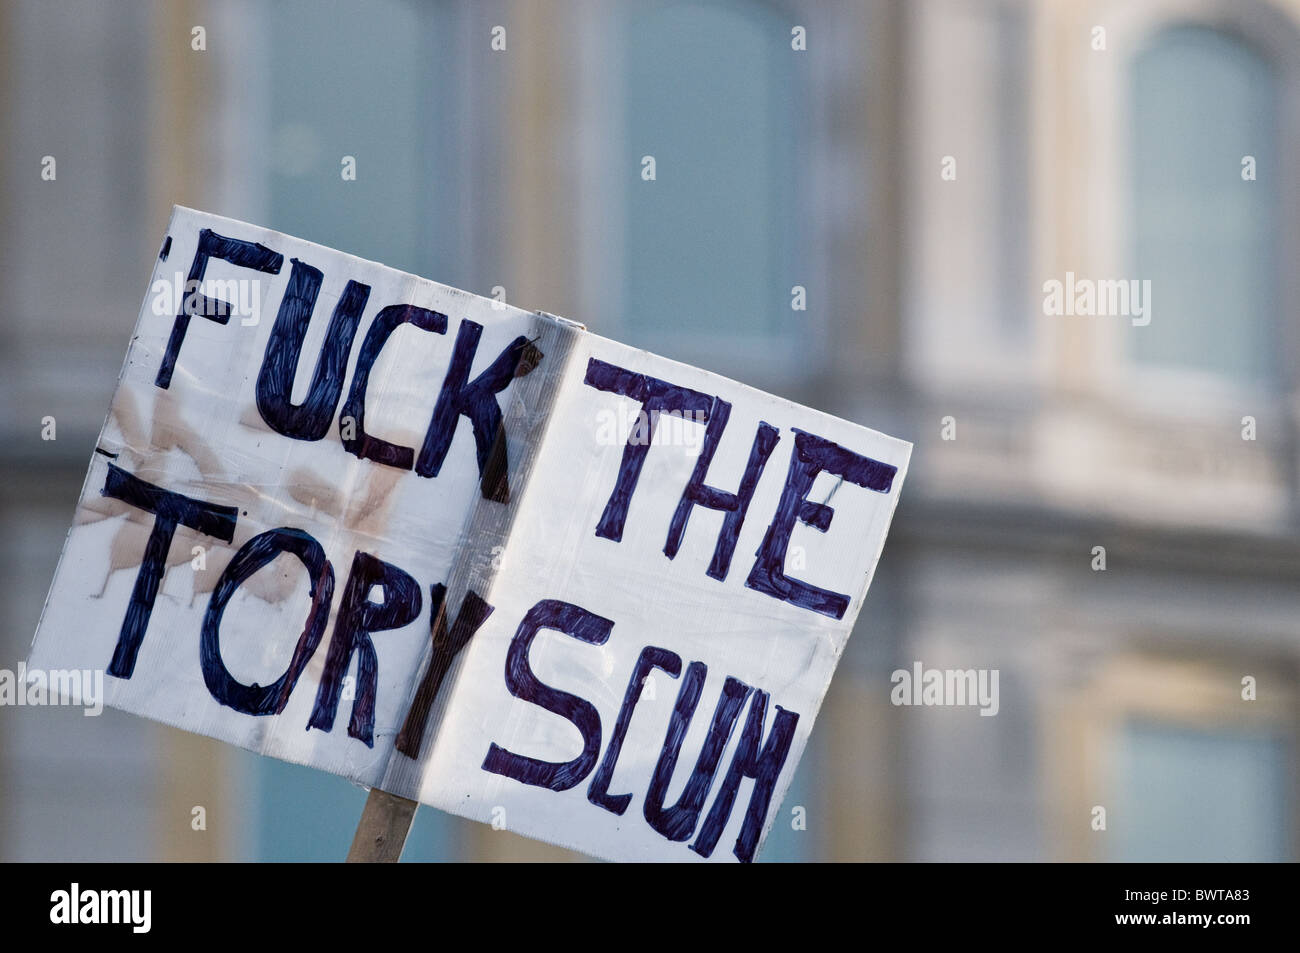 A placard protesting against the Conservative party. - Stock Image